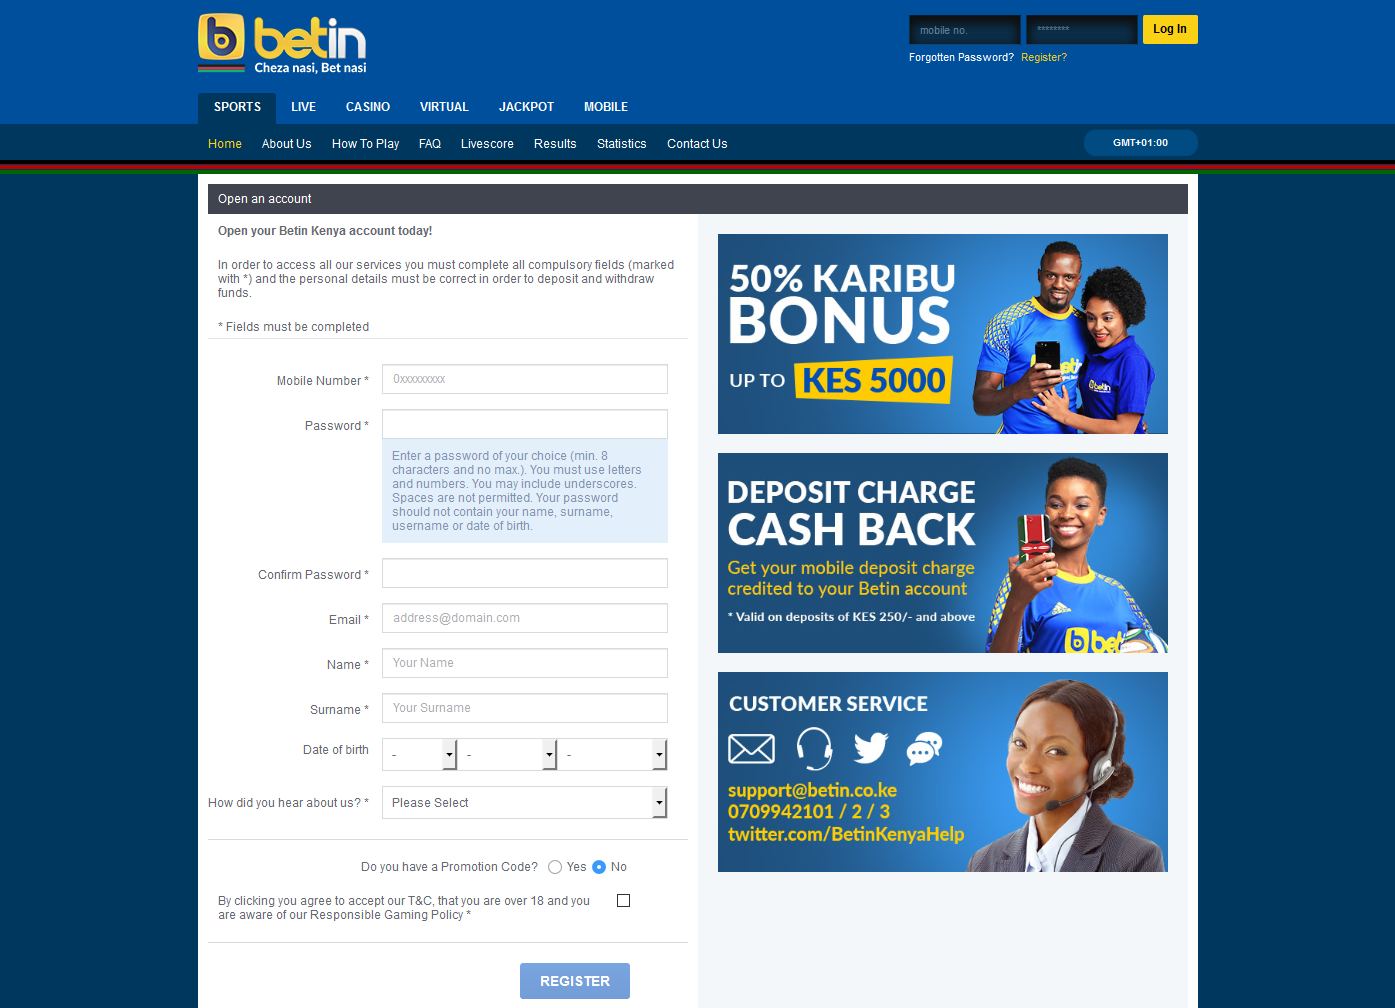 Registration on Betin | KenyanBets